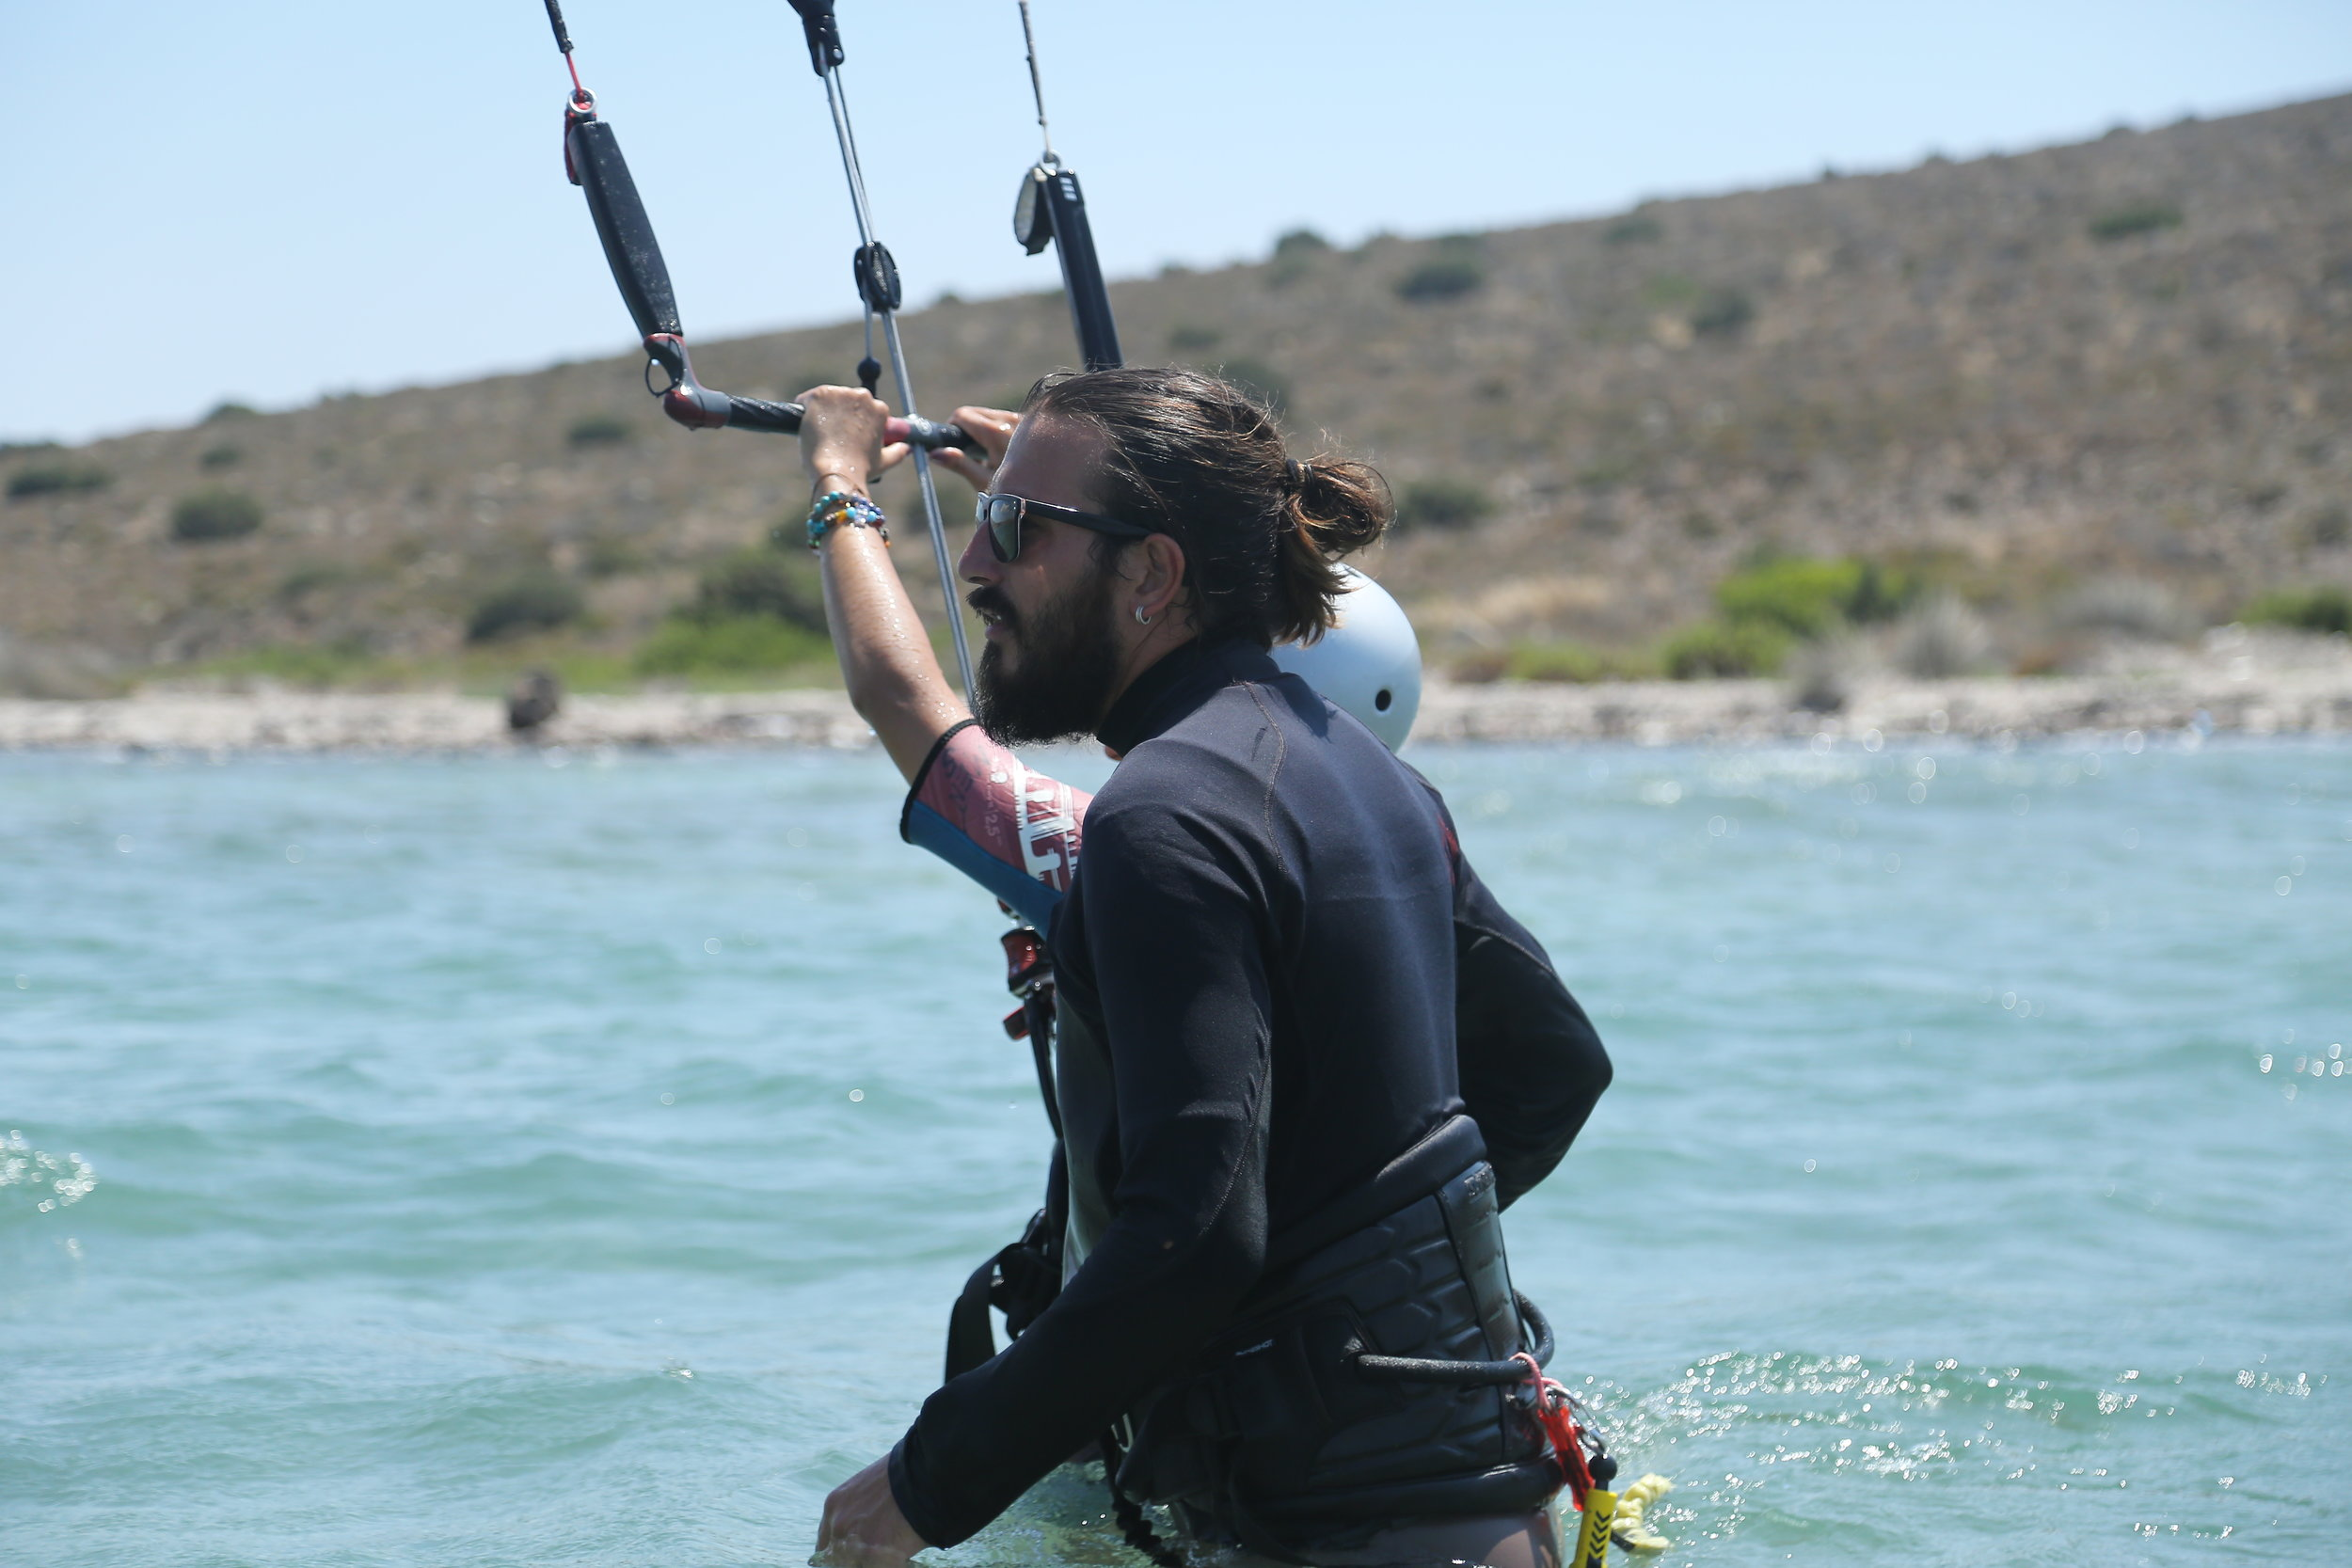 - Kitesurfer since:2015Licensed instructor since:2016Languages:TurkishHe has always been a passionate nature love, in 2010 first he had started with paragliding. For long years of paragliding, he has been into quite a lot competitions and he had traveled long miles of flying. He has been a paragliding asistant instructor, and then he started kiteboarding in 2015. He had progressed quite quickly thanks to his paragliding experience, and he has been a kiteboarding instructor in 2016. After working a full season in Kite Club Urla, he keeps teaching and sharing his expertise in Advance Kiting.